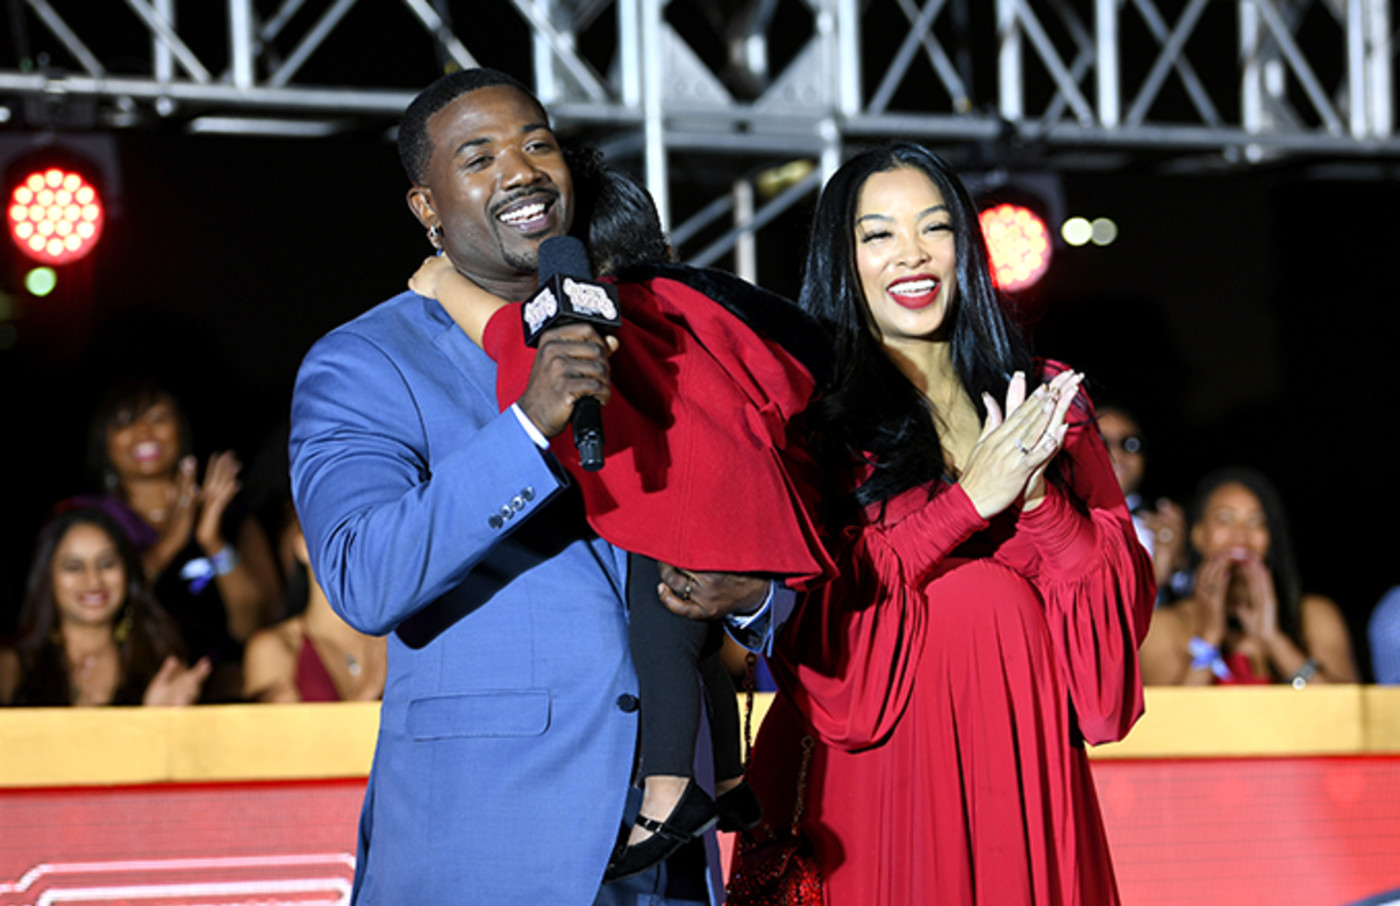 Ray J Debunks Rumors! Says his Family is there with him